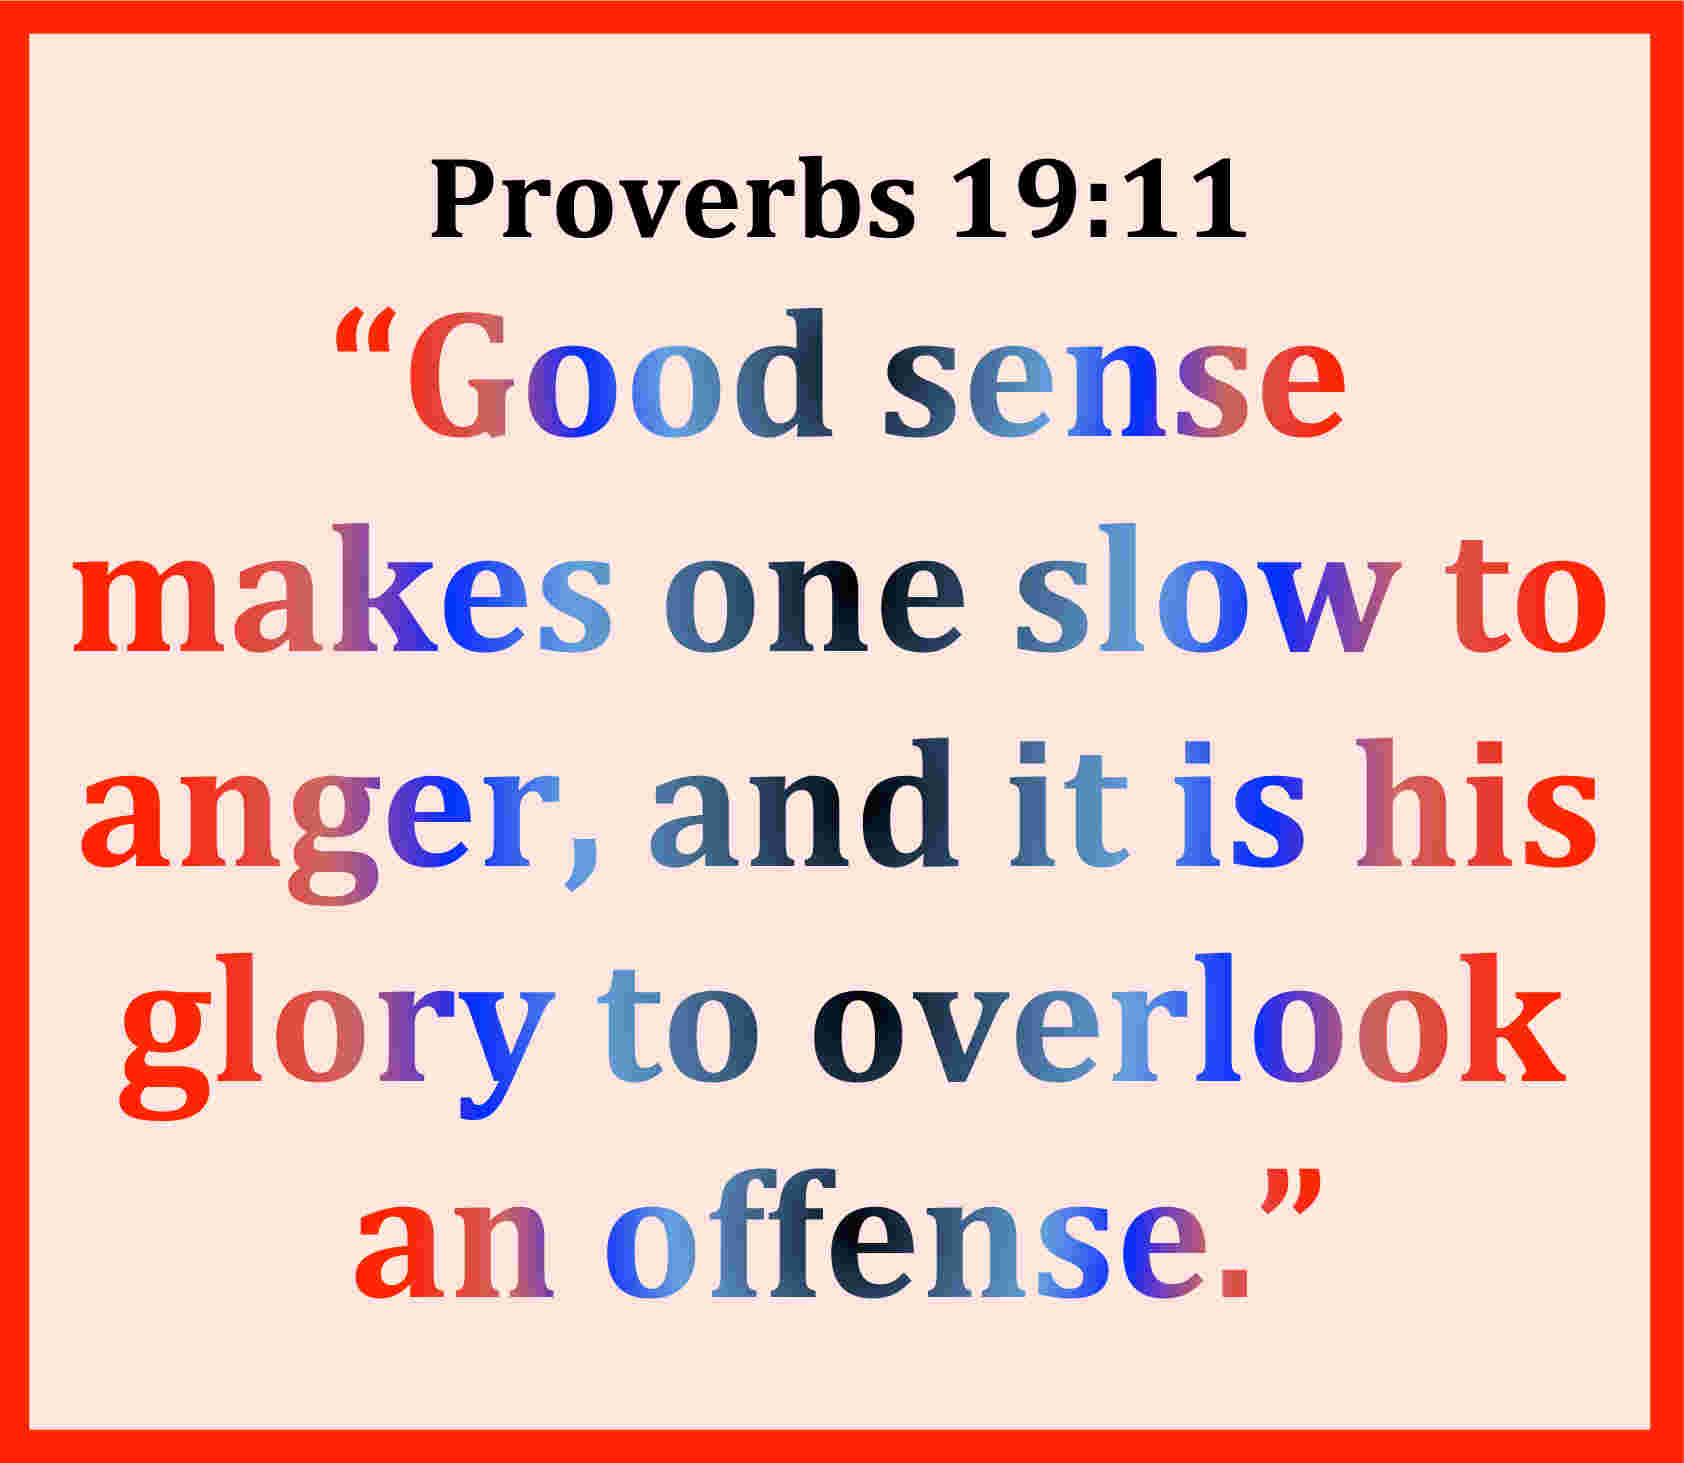 Quote Related To Life Bible Verses About Anger 20 Scripture Quotes